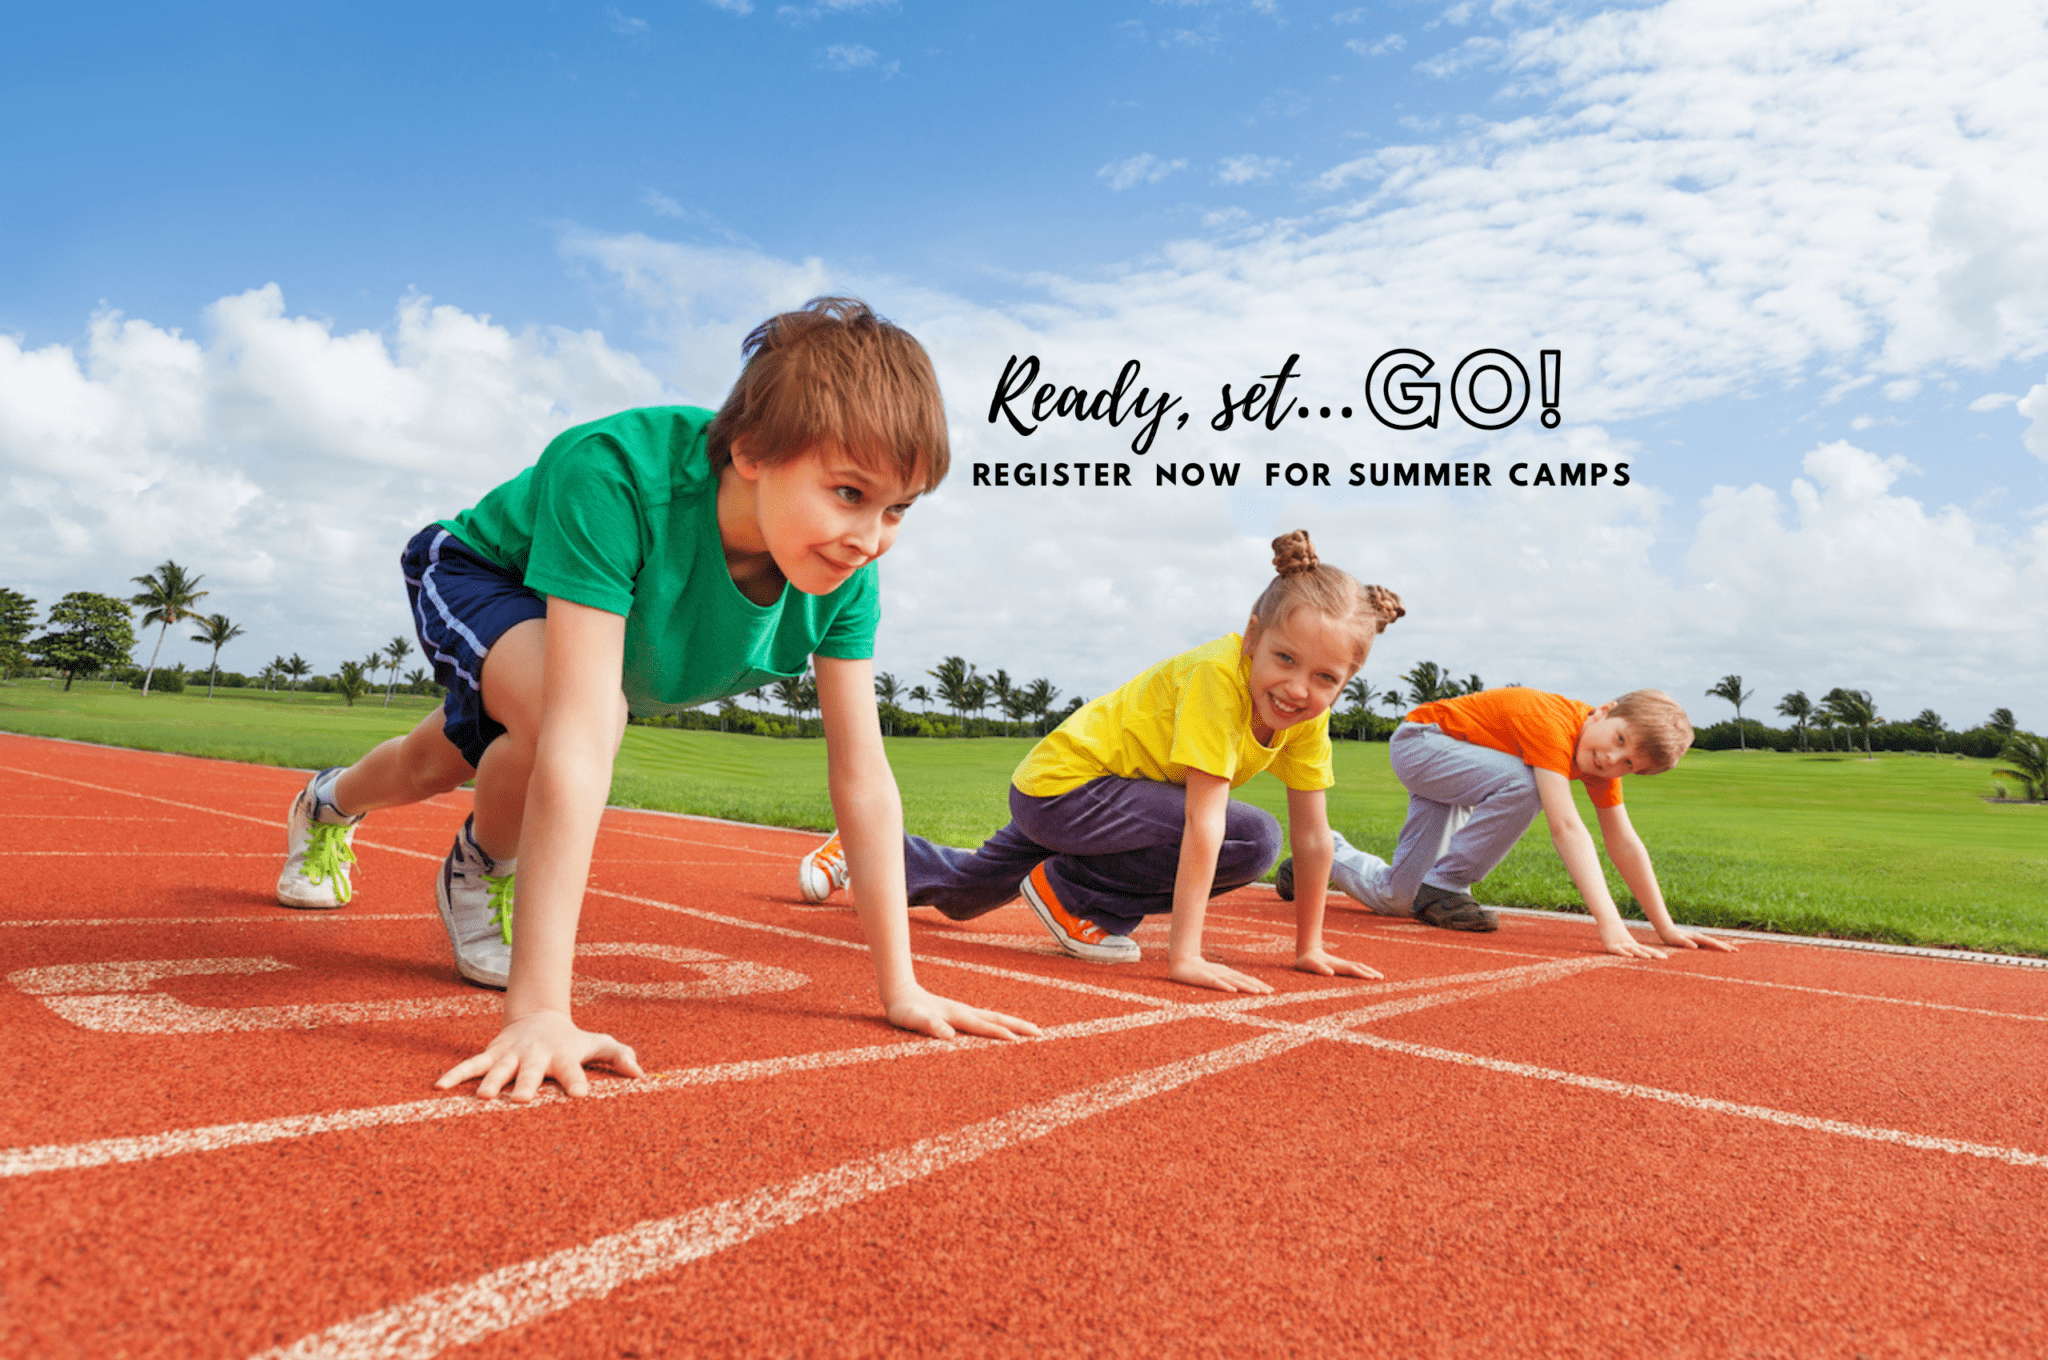 Ready, set, Go! Register now for Summer Camps!